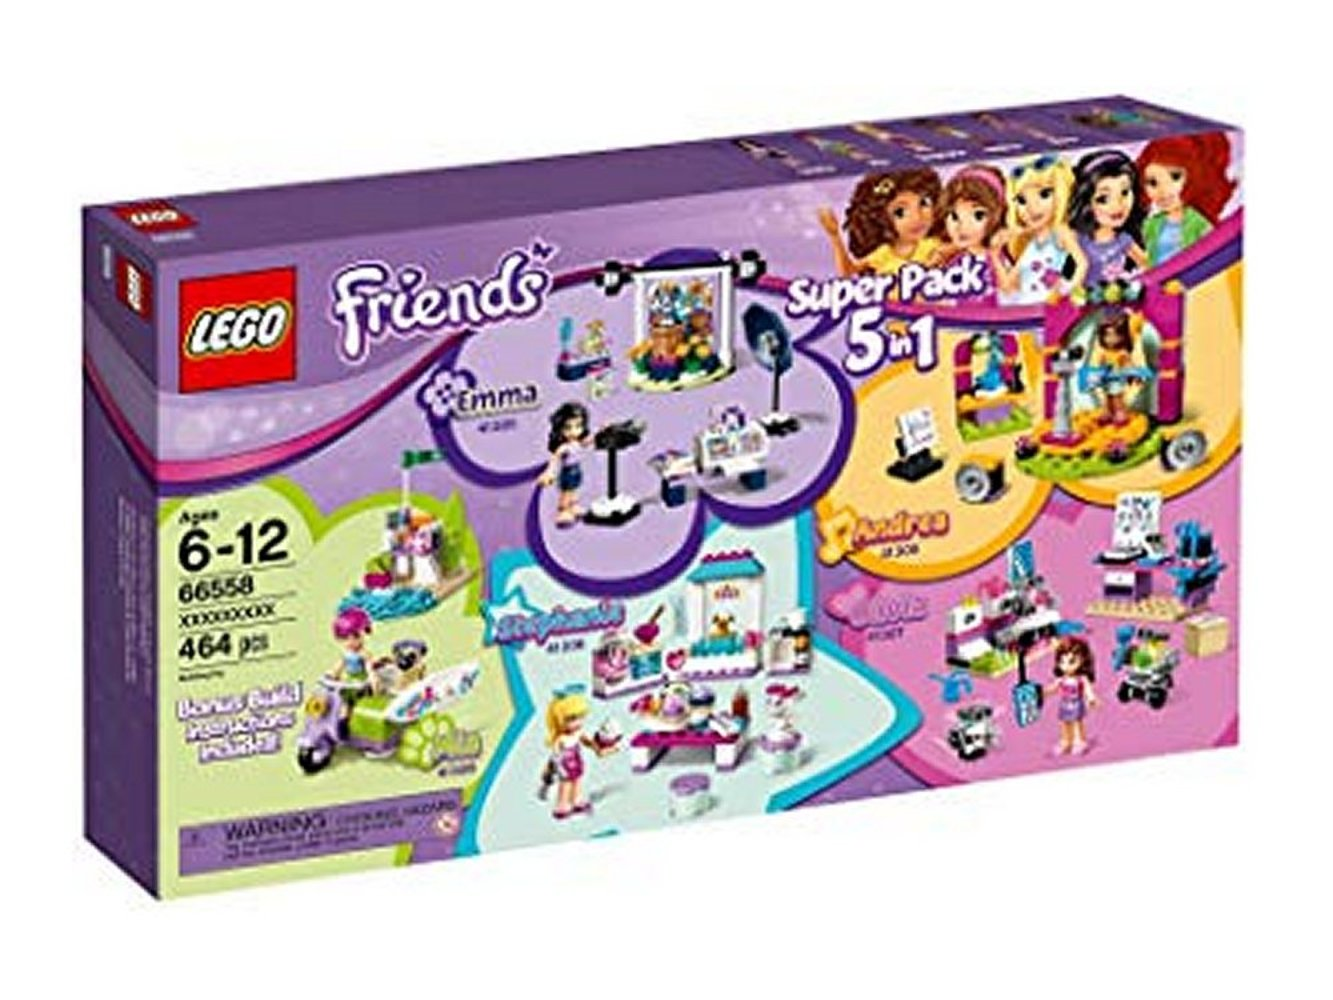 Friends Super Pack 5 in 1